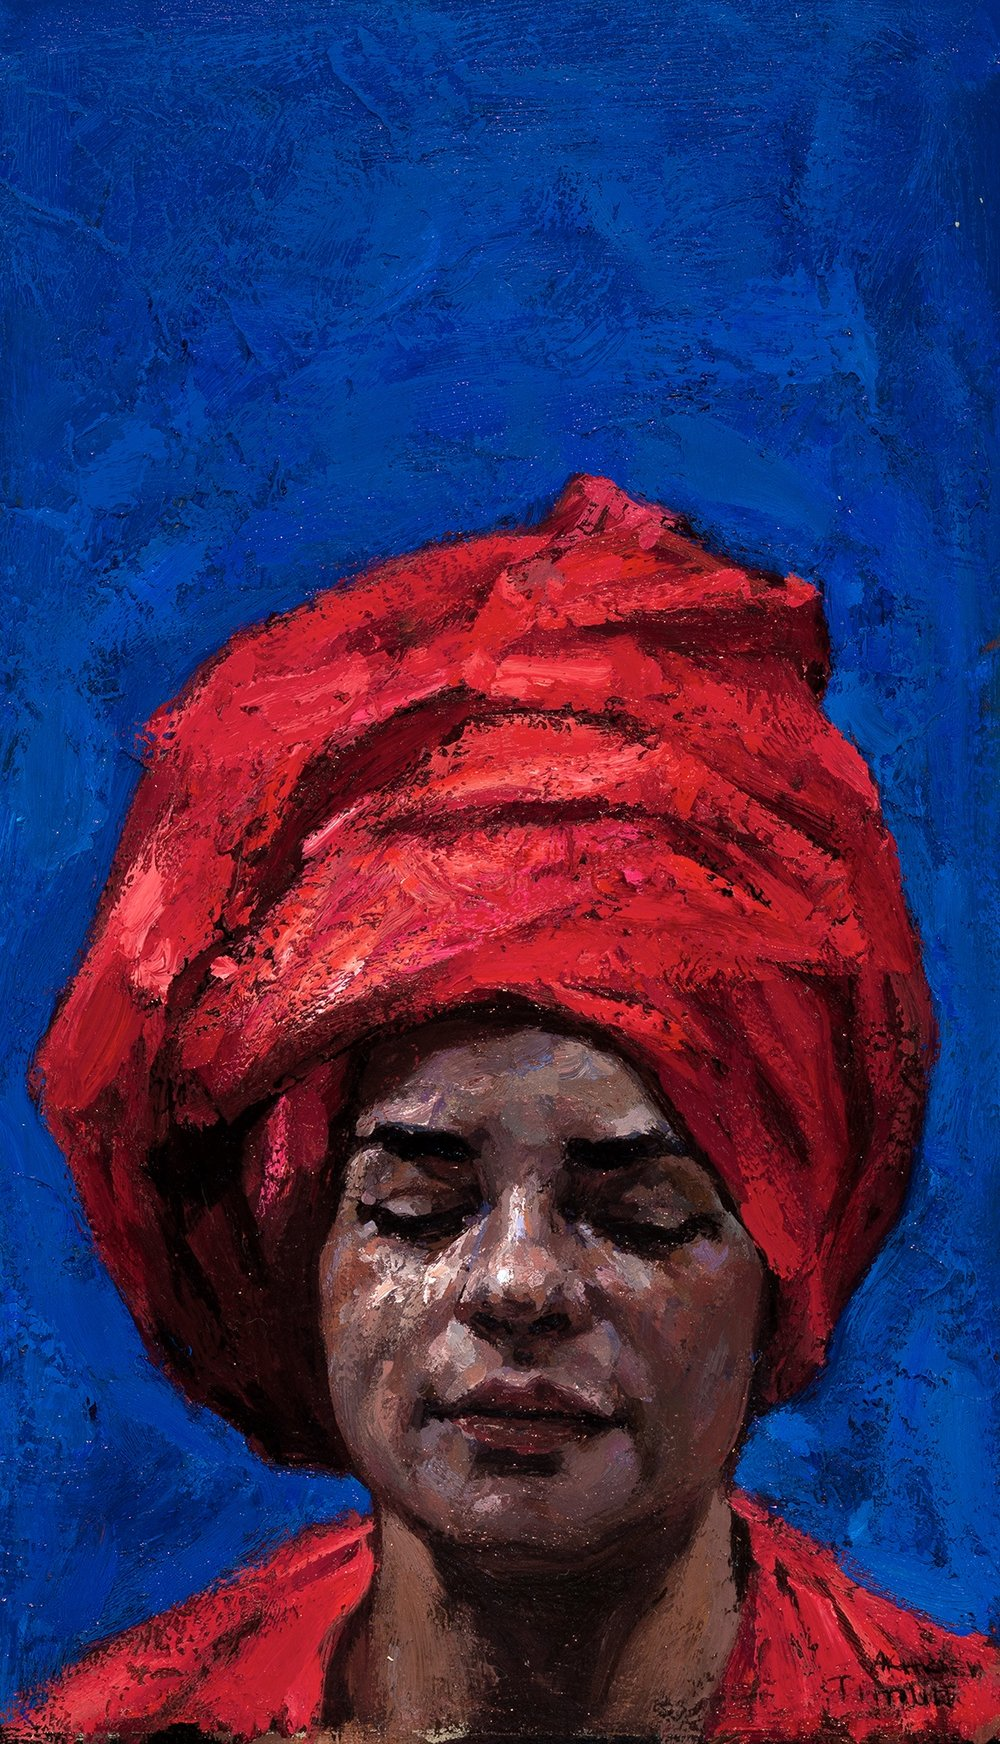 Timur Akhriev Title: Blue and Red, but mostly Blue Size: 6 x 9,75 Oil on Linen Panel Price, Reatil, Framed: $1200. Year: 2016  Available through: Paul & Scott Gallery